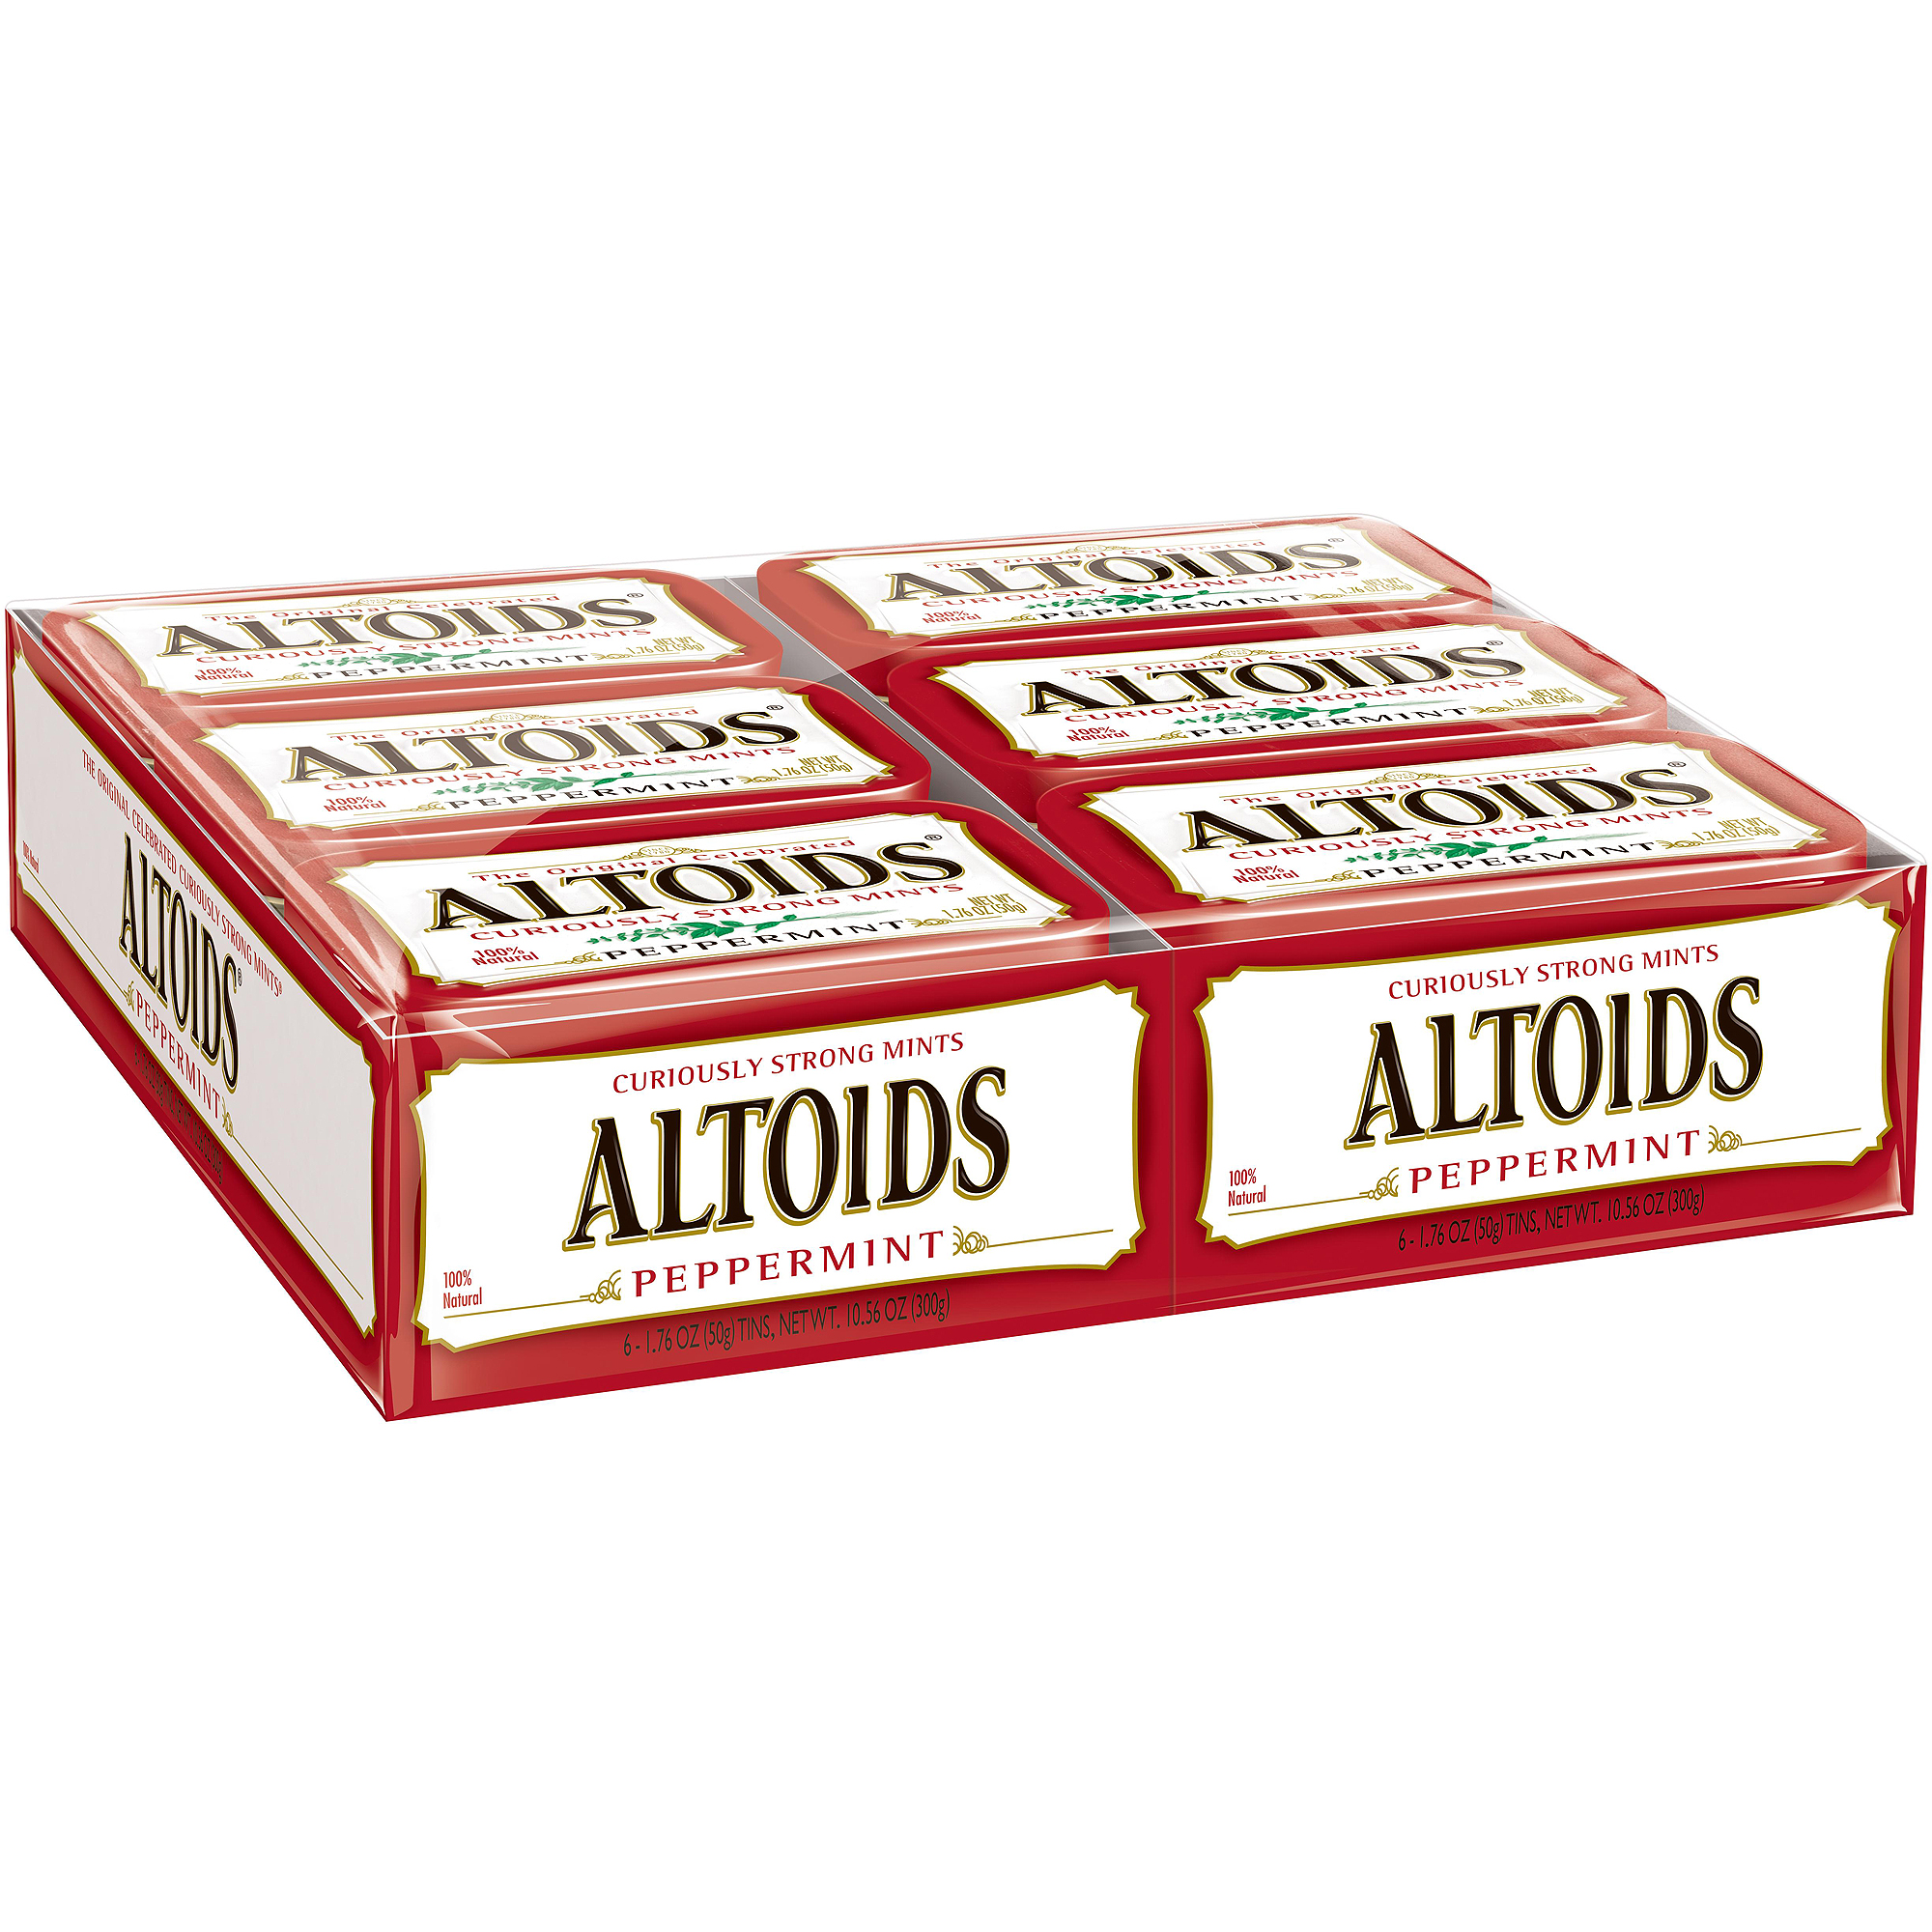 Altoids Peppermint Mint, 1.76 oz tin, 12 count